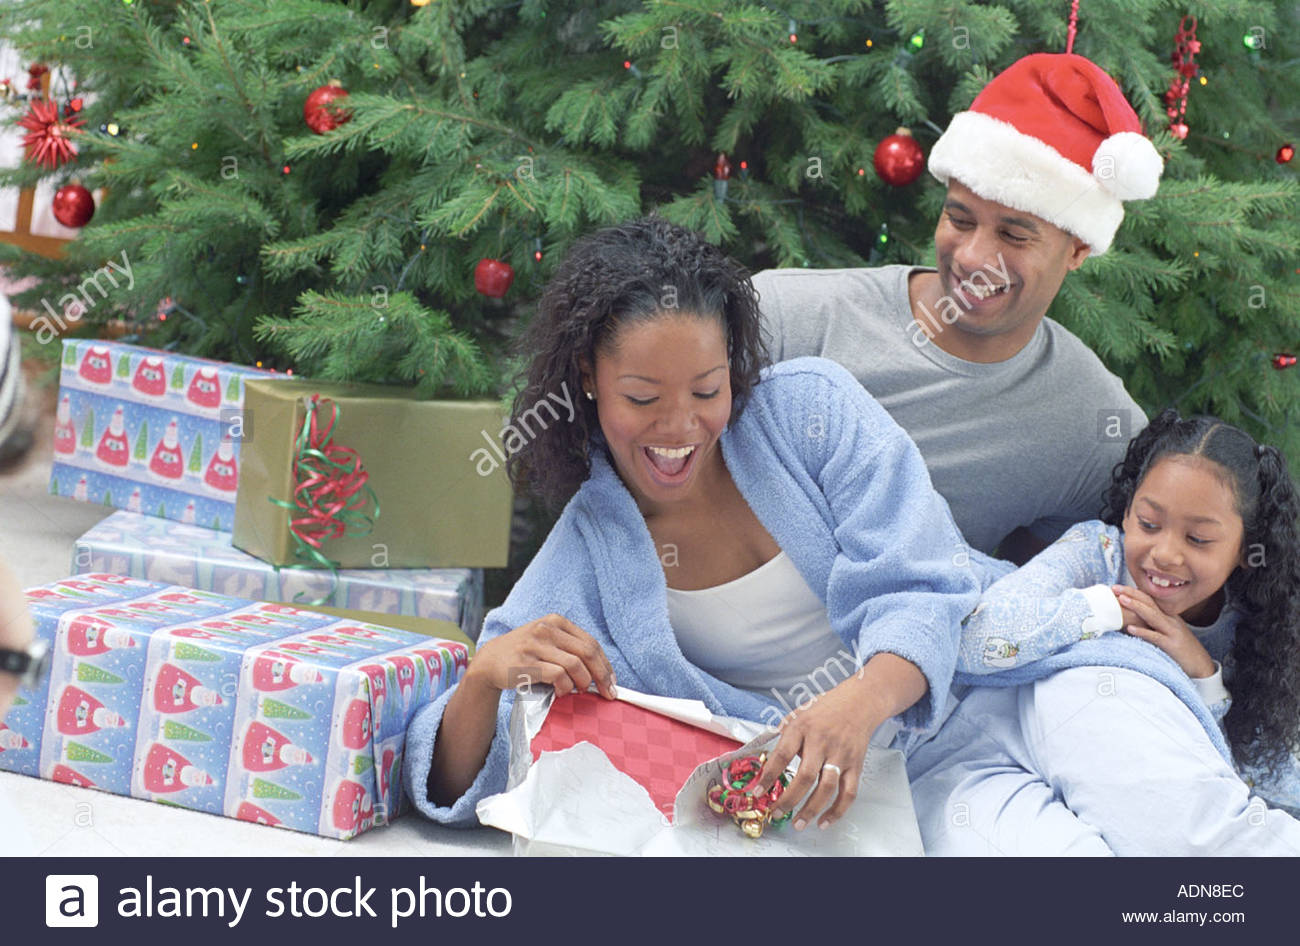 Family Christmas Morning - Stock Image